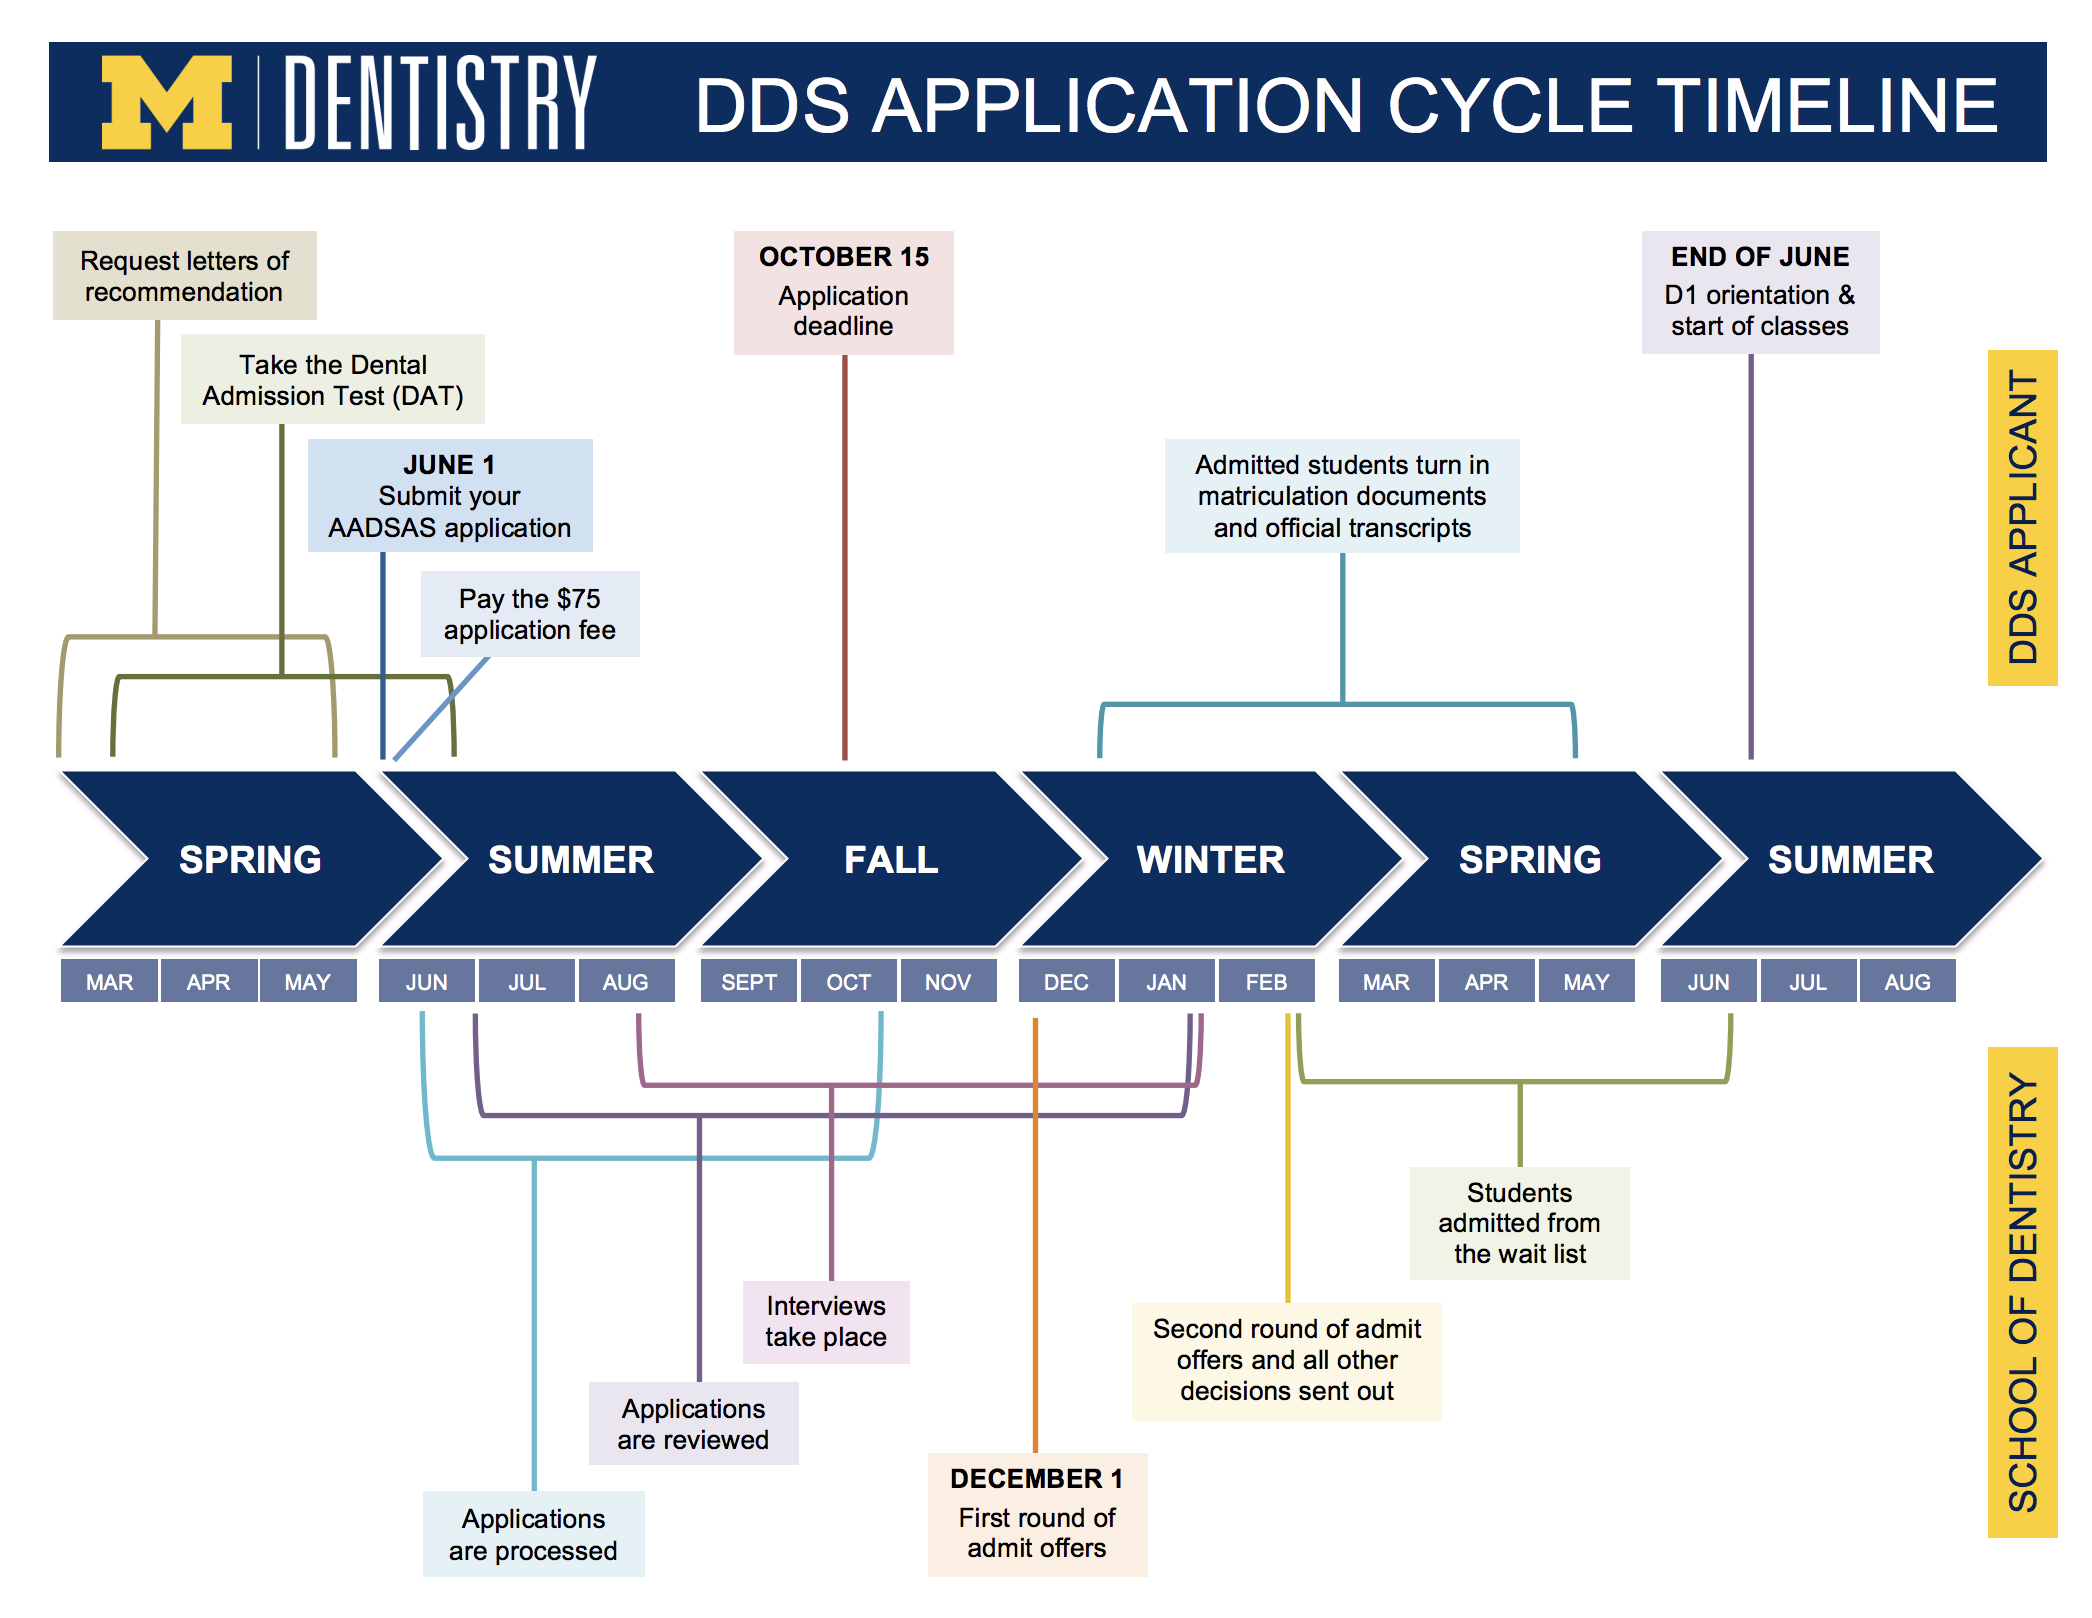 dds application timeline